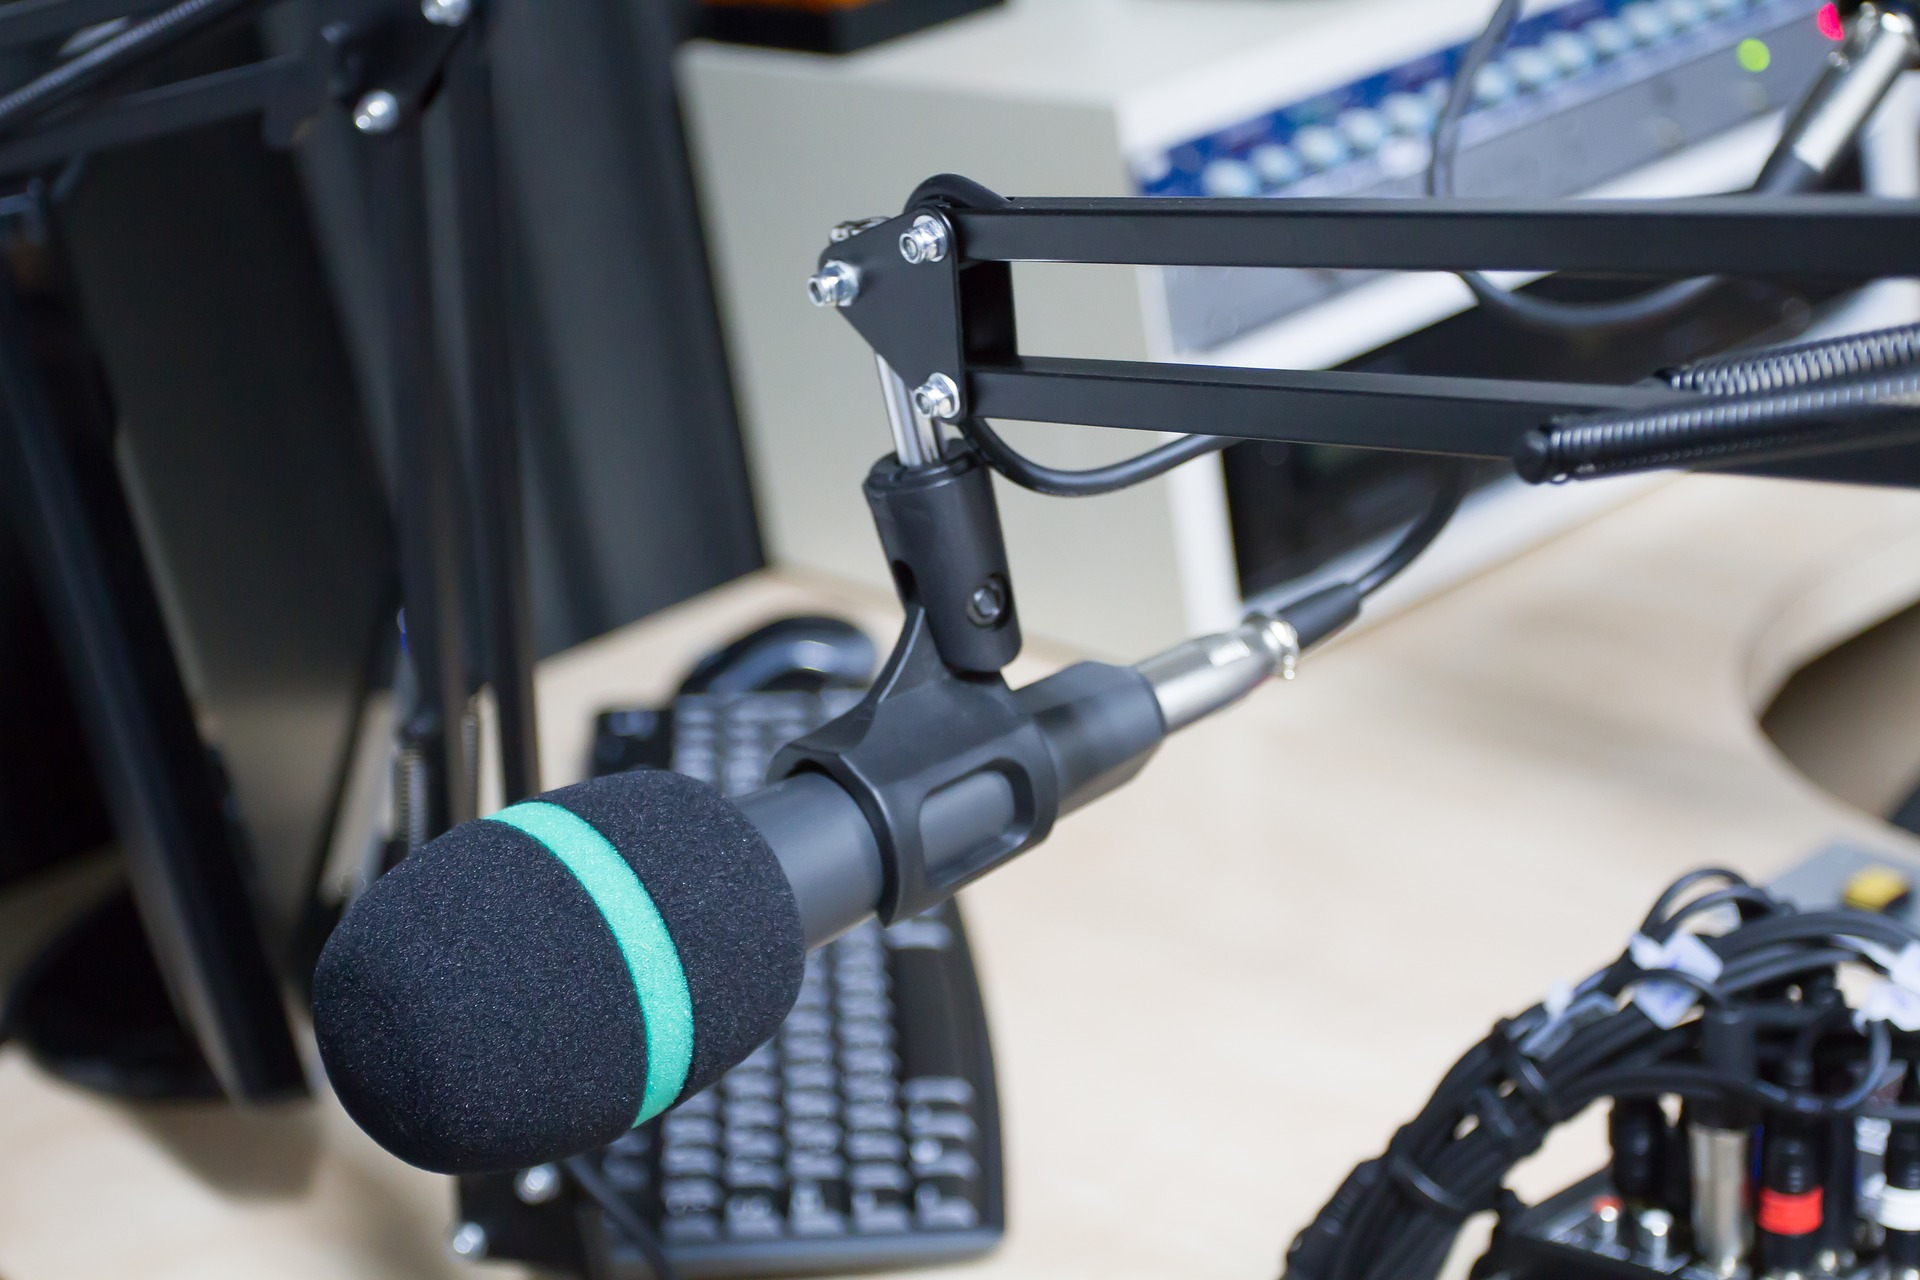 Radio Interview Microphone